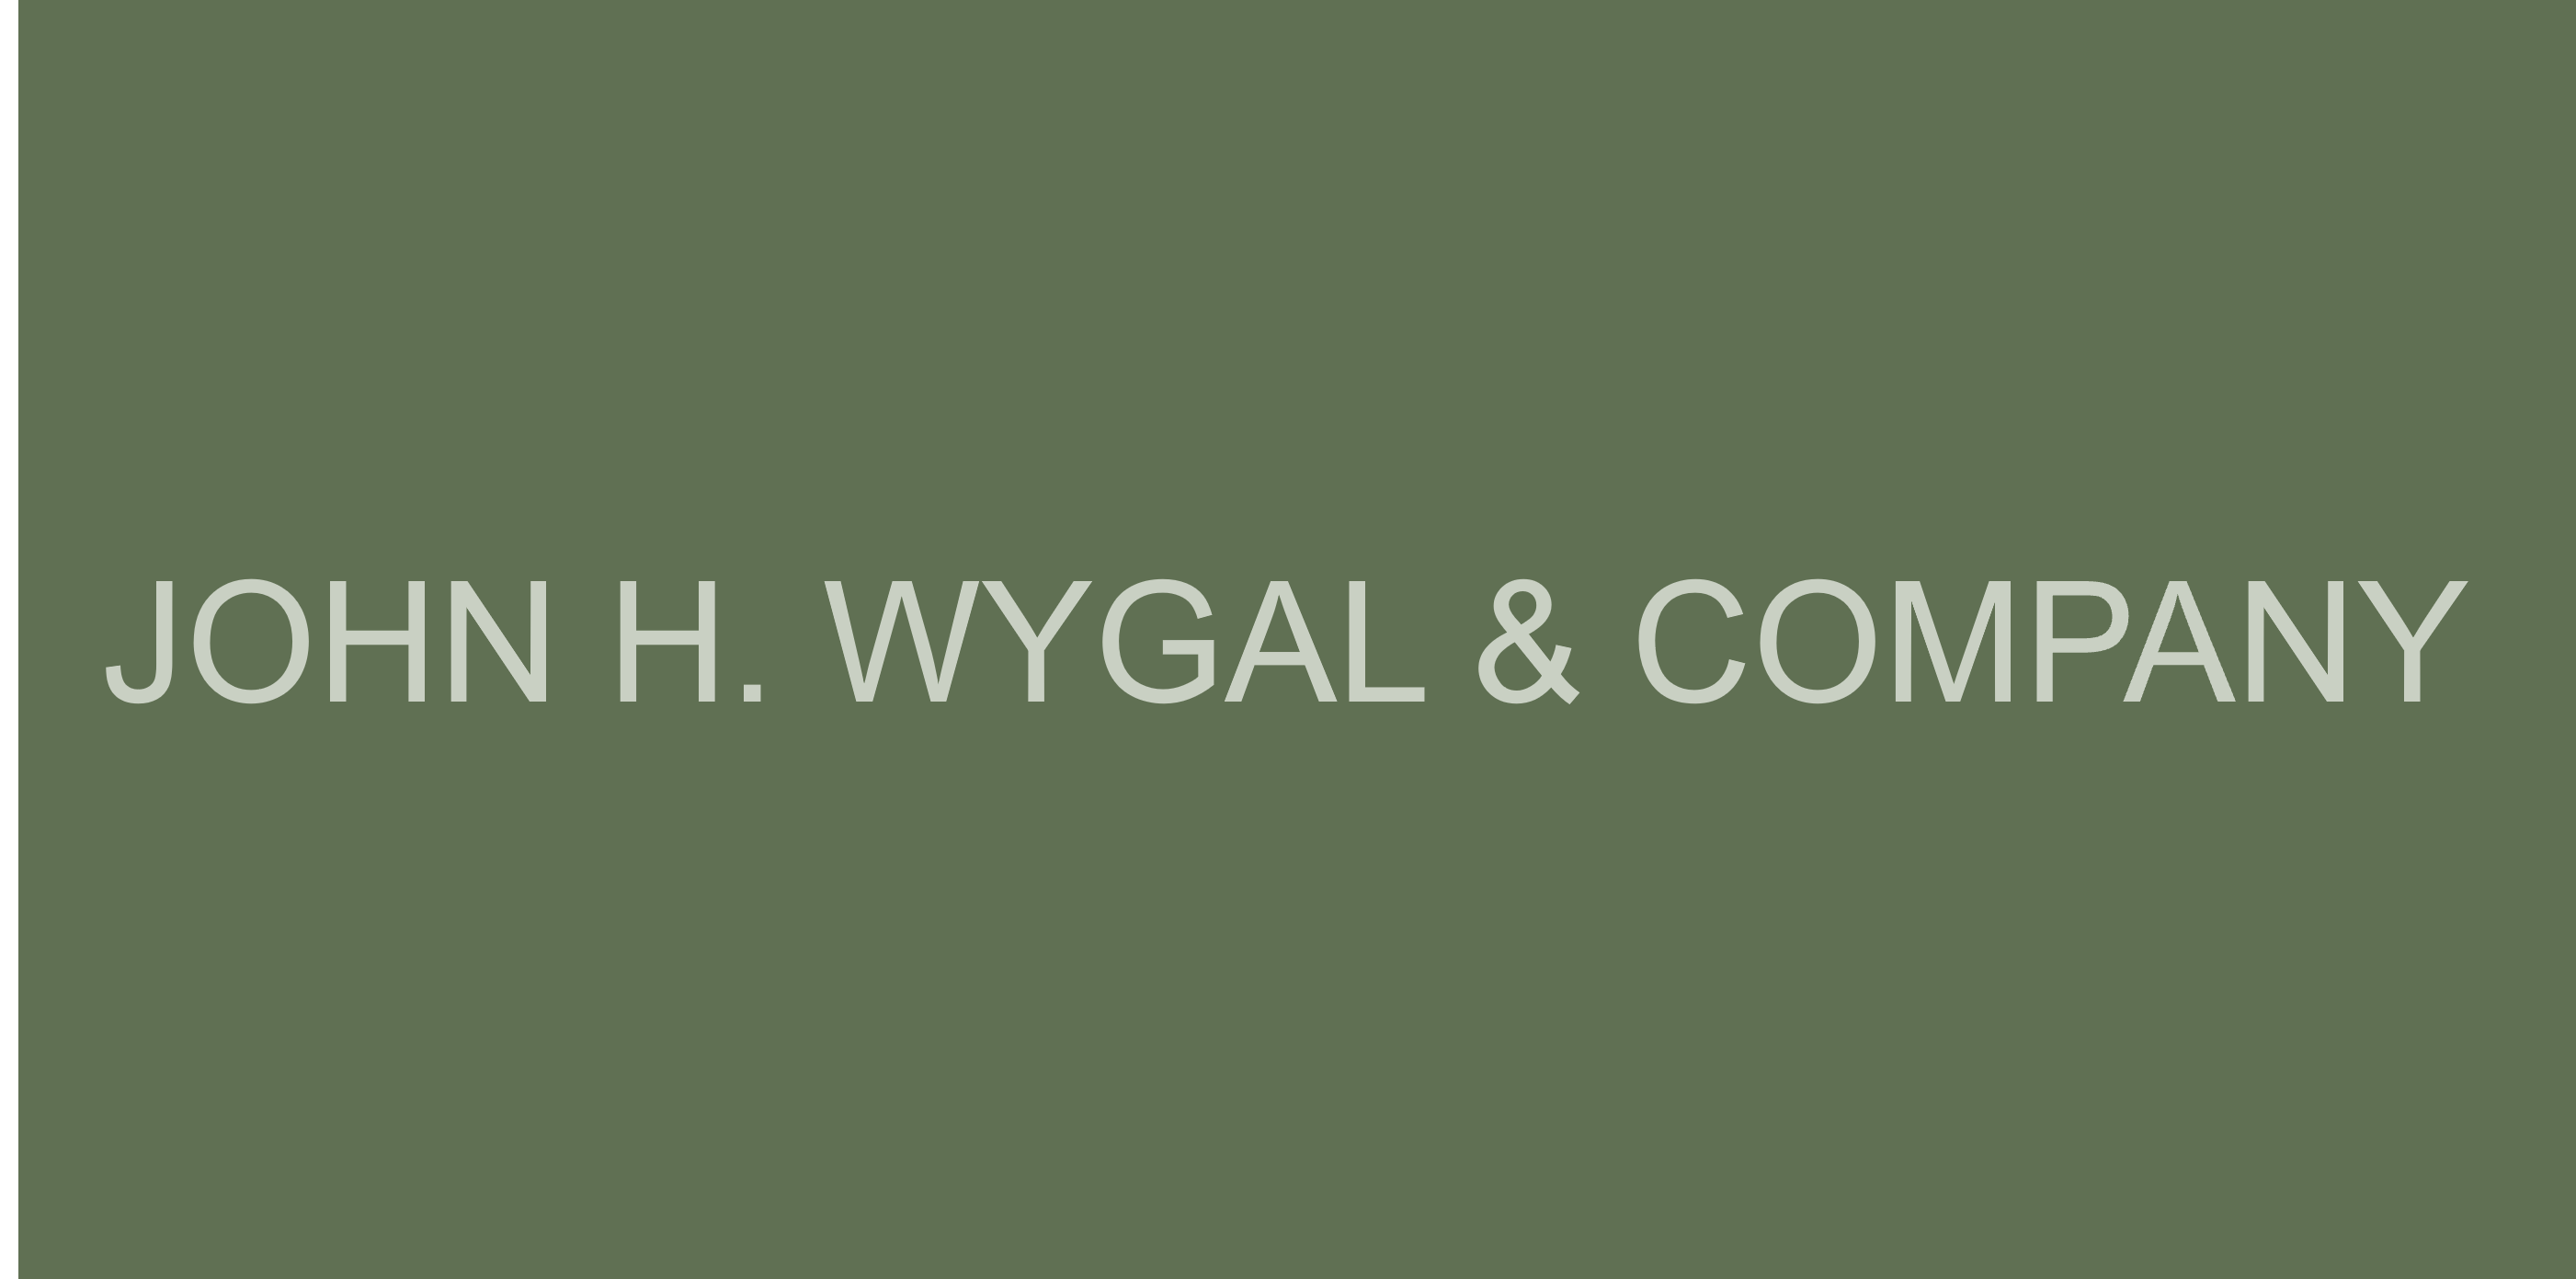 John H. Wygal & Company, Proud Member of the Greater Norwalk Chamber Since 1996